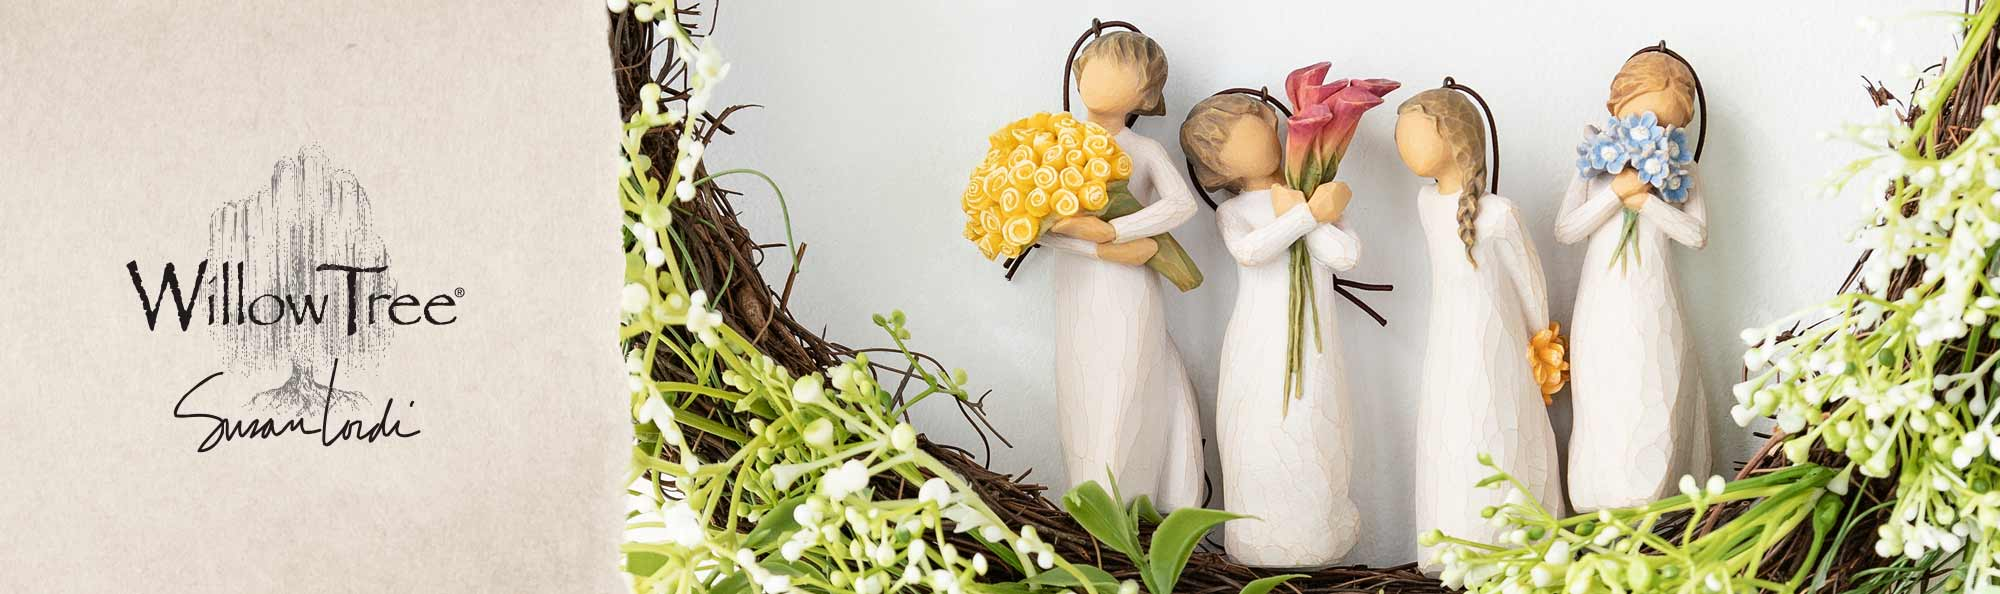 Willow Tree by Susan Lordi. Four ornaments of girls holding colorful flowers.